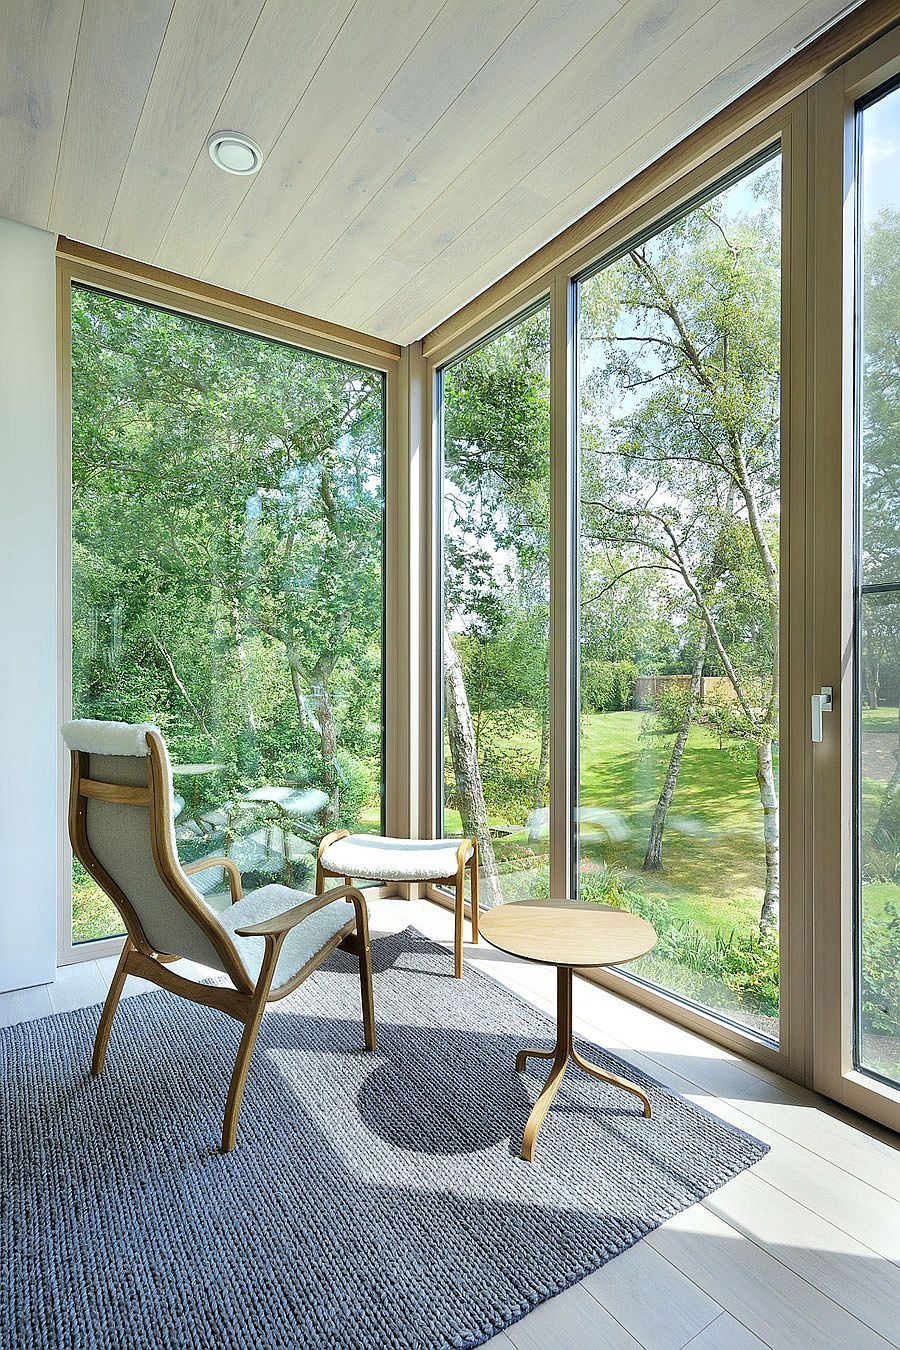 Corner glass walls open up the interior to the forest outside